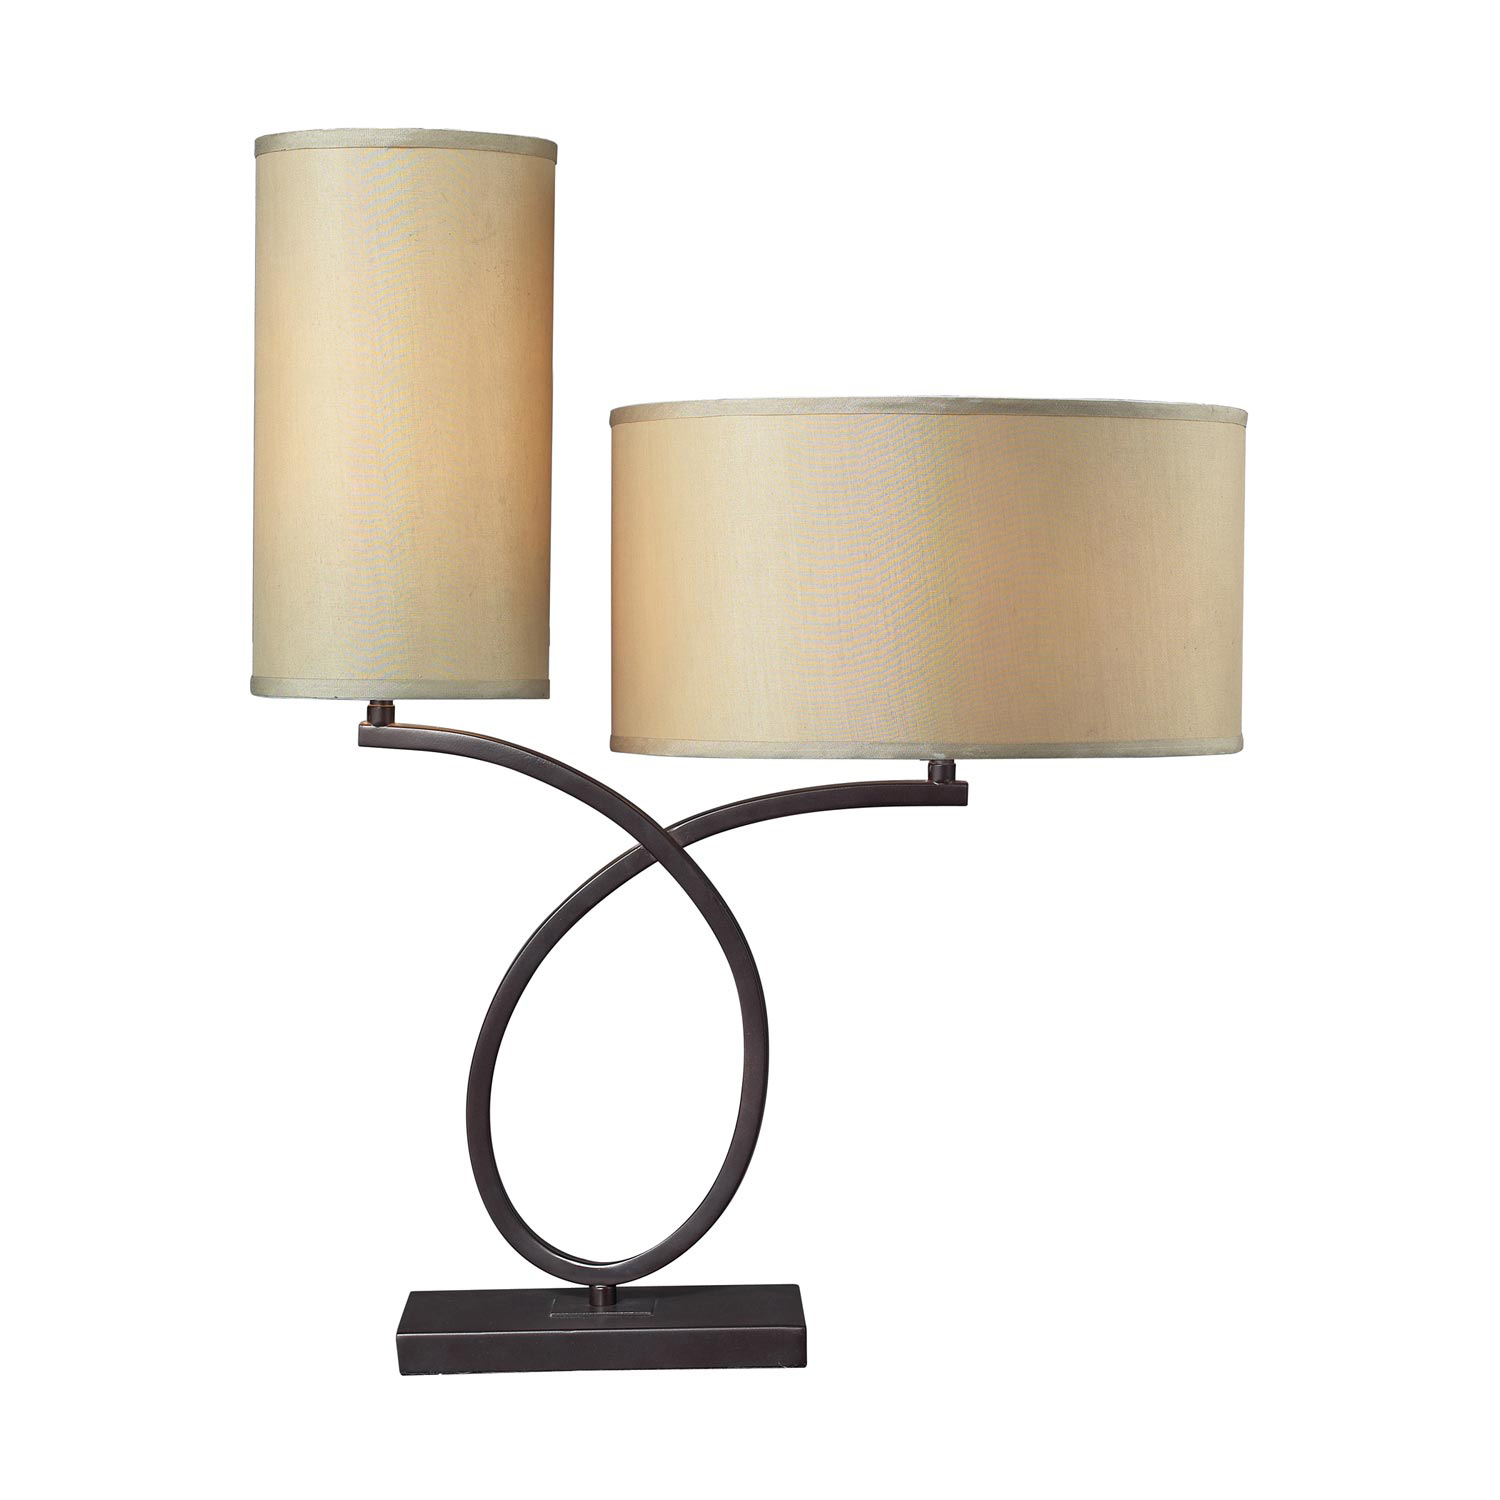 Elk Lighting D2002 Greenwich Table Lamp - Aged Bronze